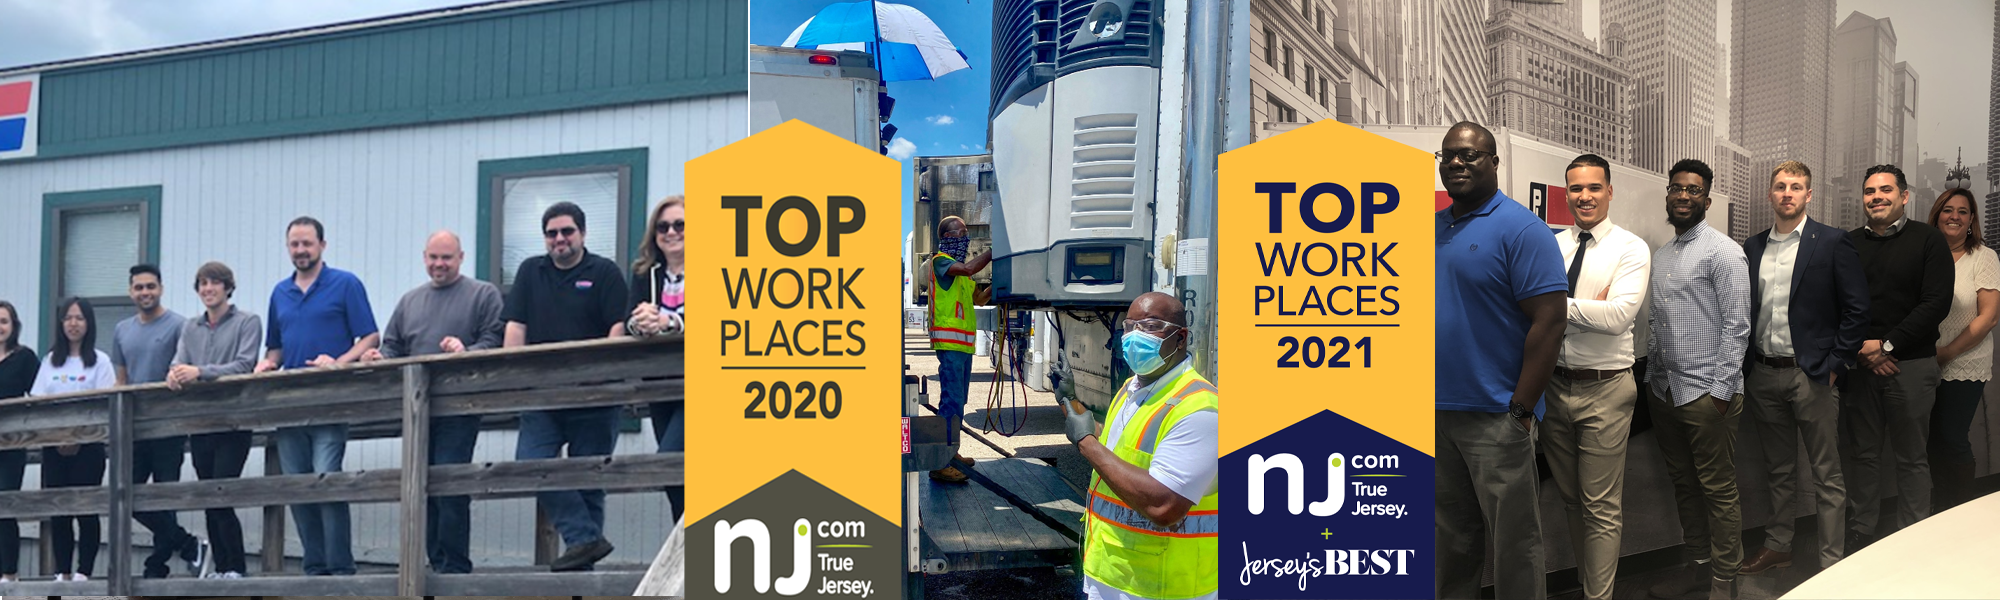 PLM - 2020 Top WorkPlace